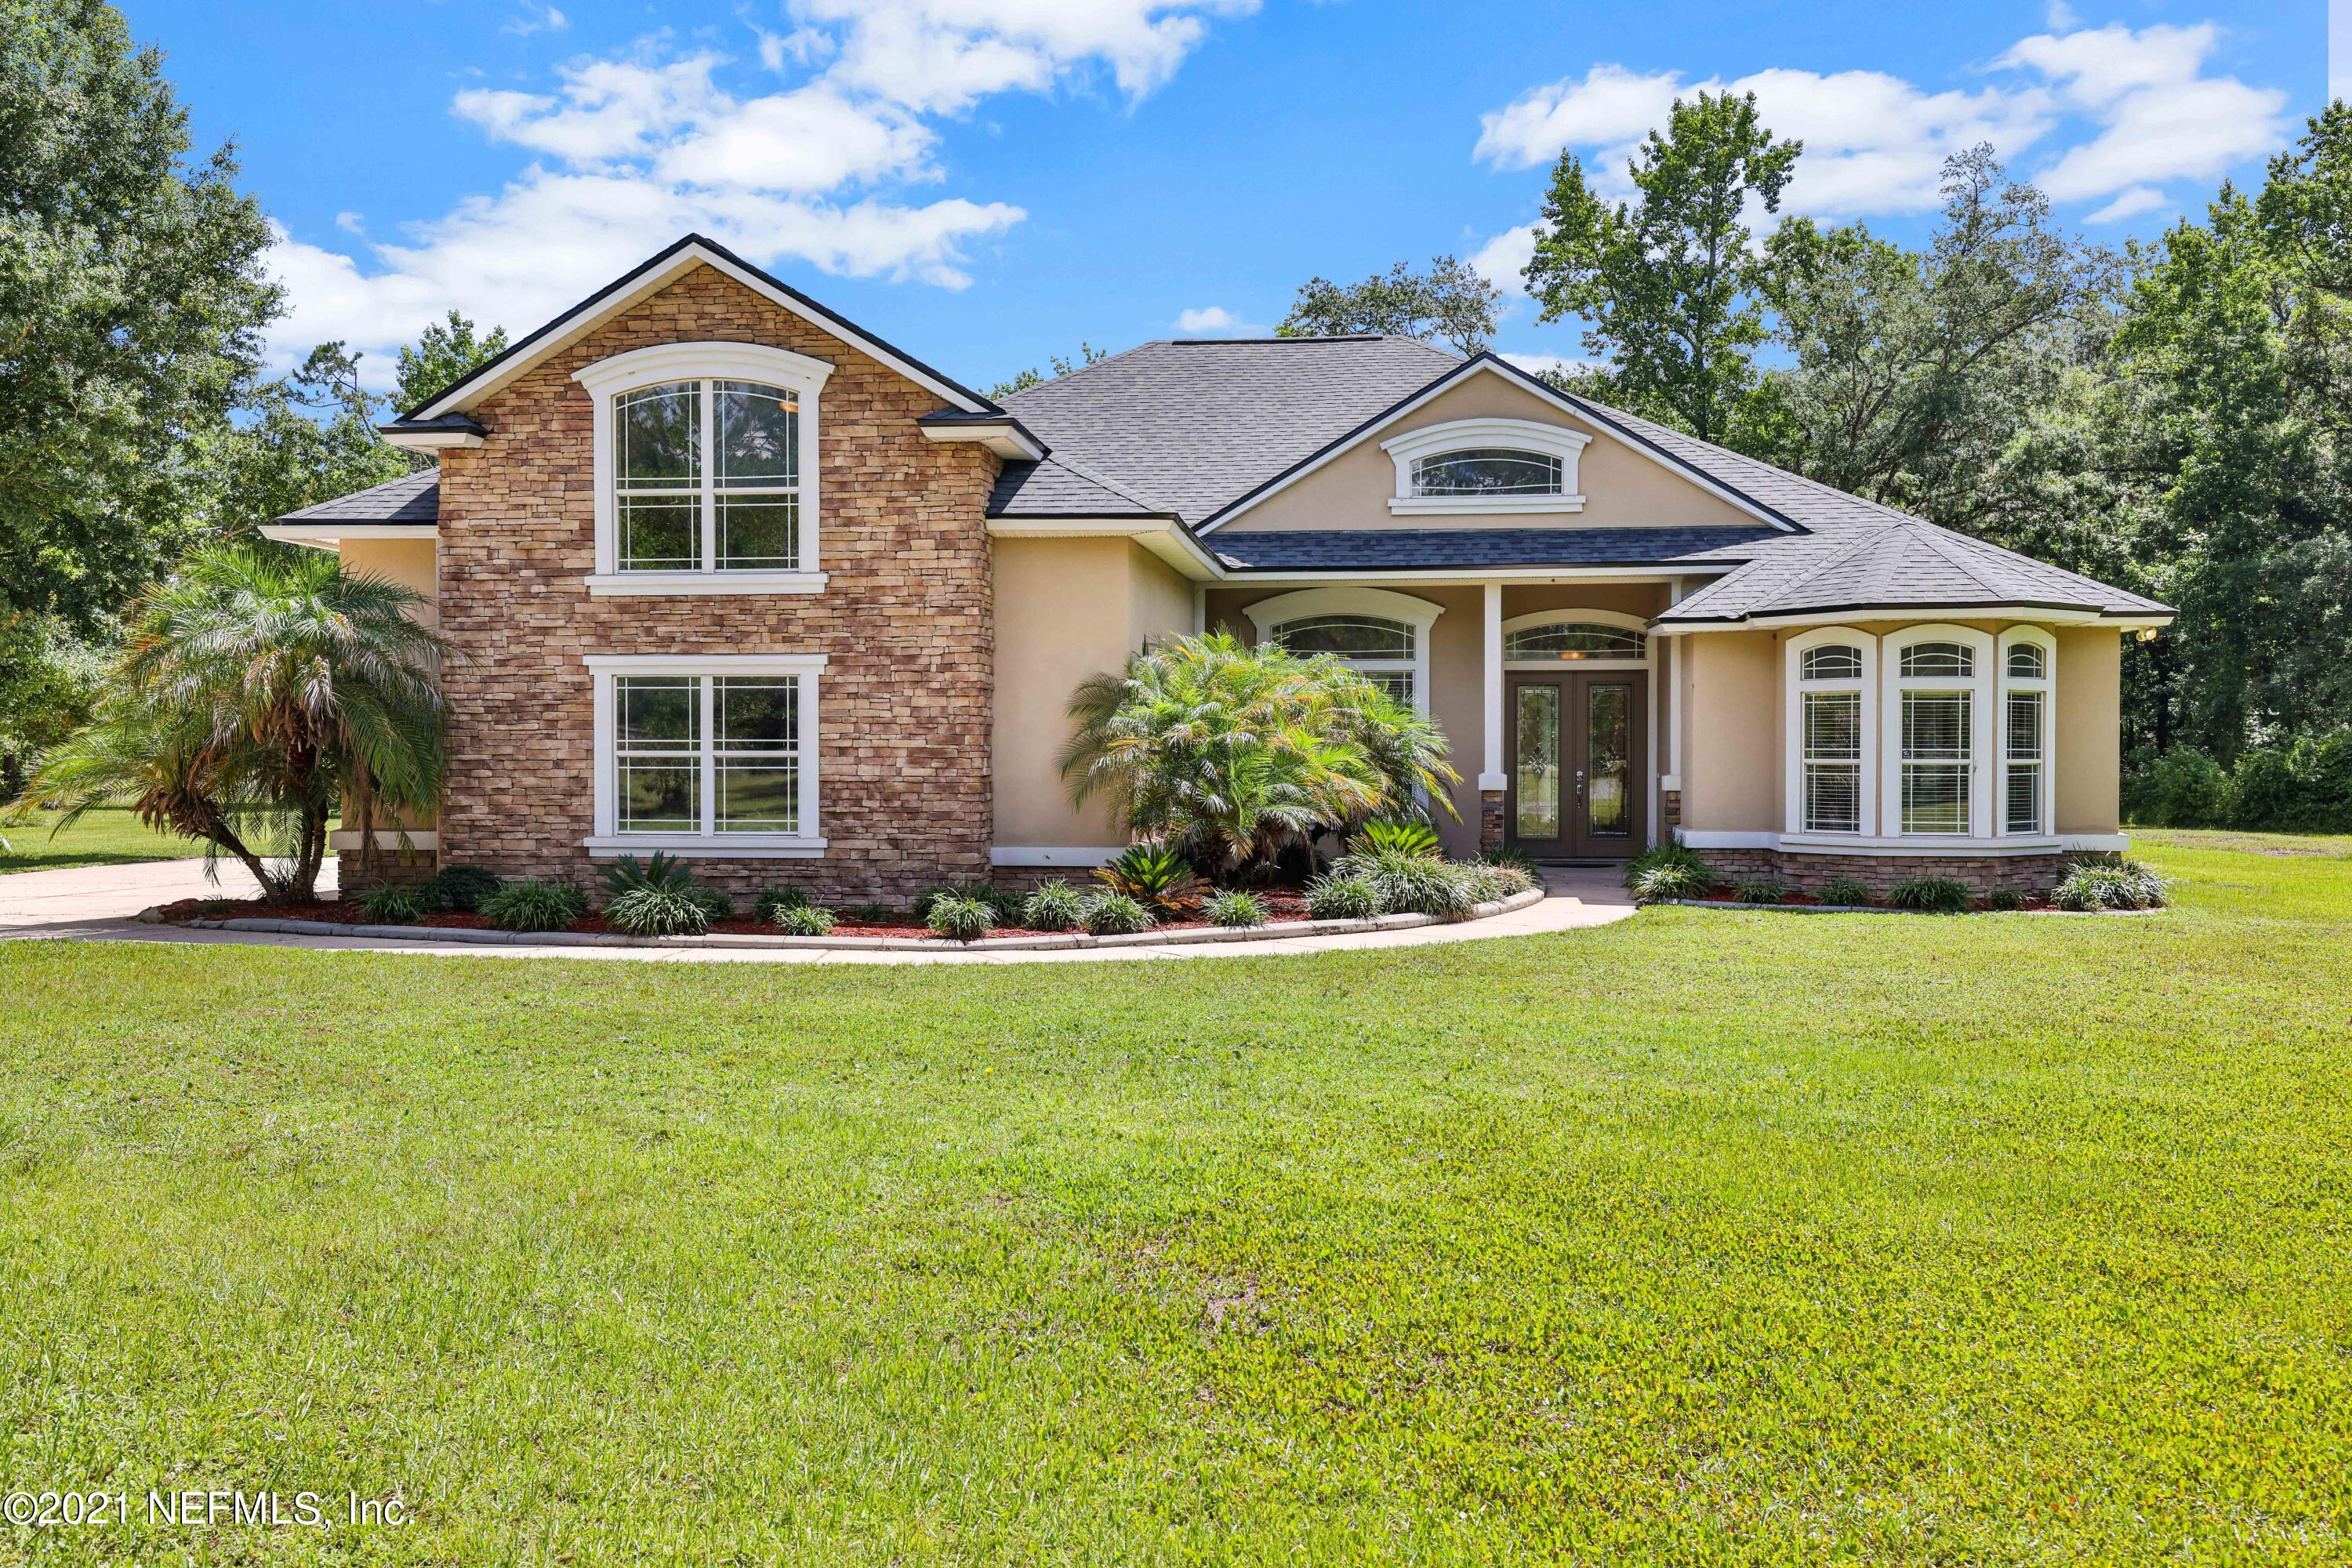 5701 COUNTY RD 209, GREEN COVE SPRINGS, FLORIDA 32043, 4 Bedrooms Bedrooms, ,4 BathroomsBathrooms,Residential,For sale,COUNTY RD 209,1115832